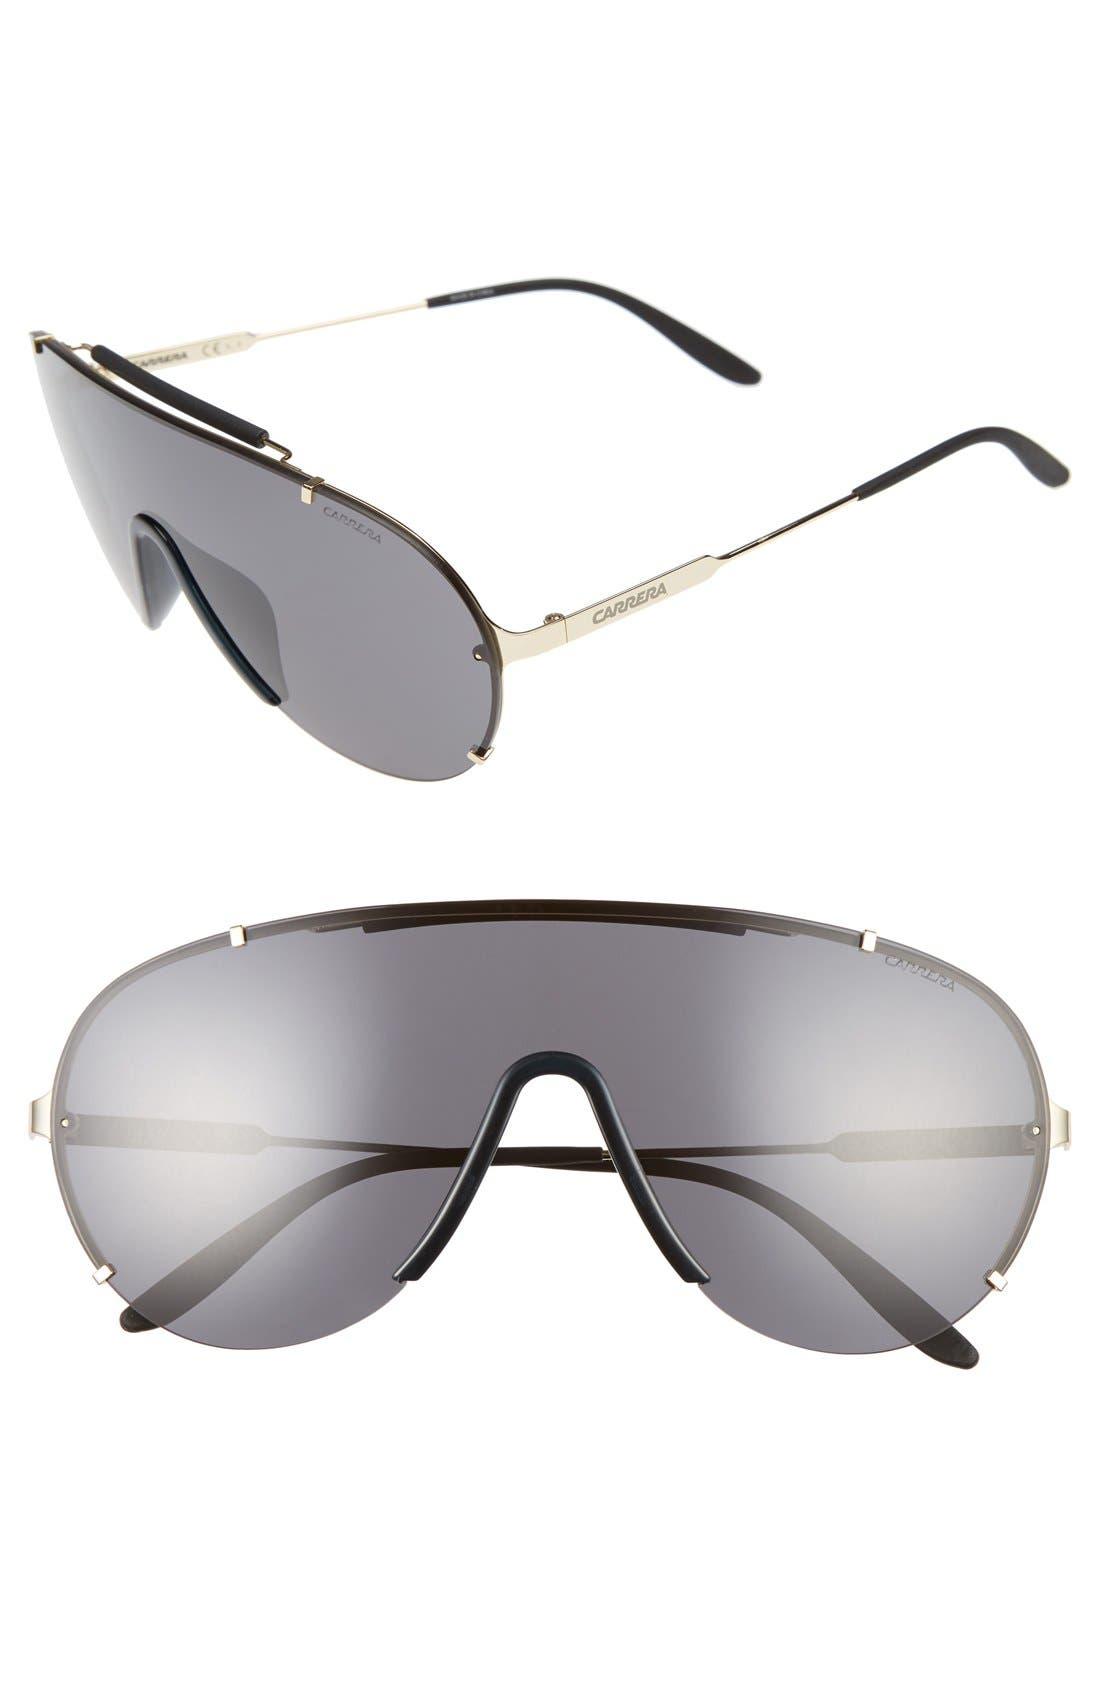 99mm Sunglasses,                         Main,                         color, Gold